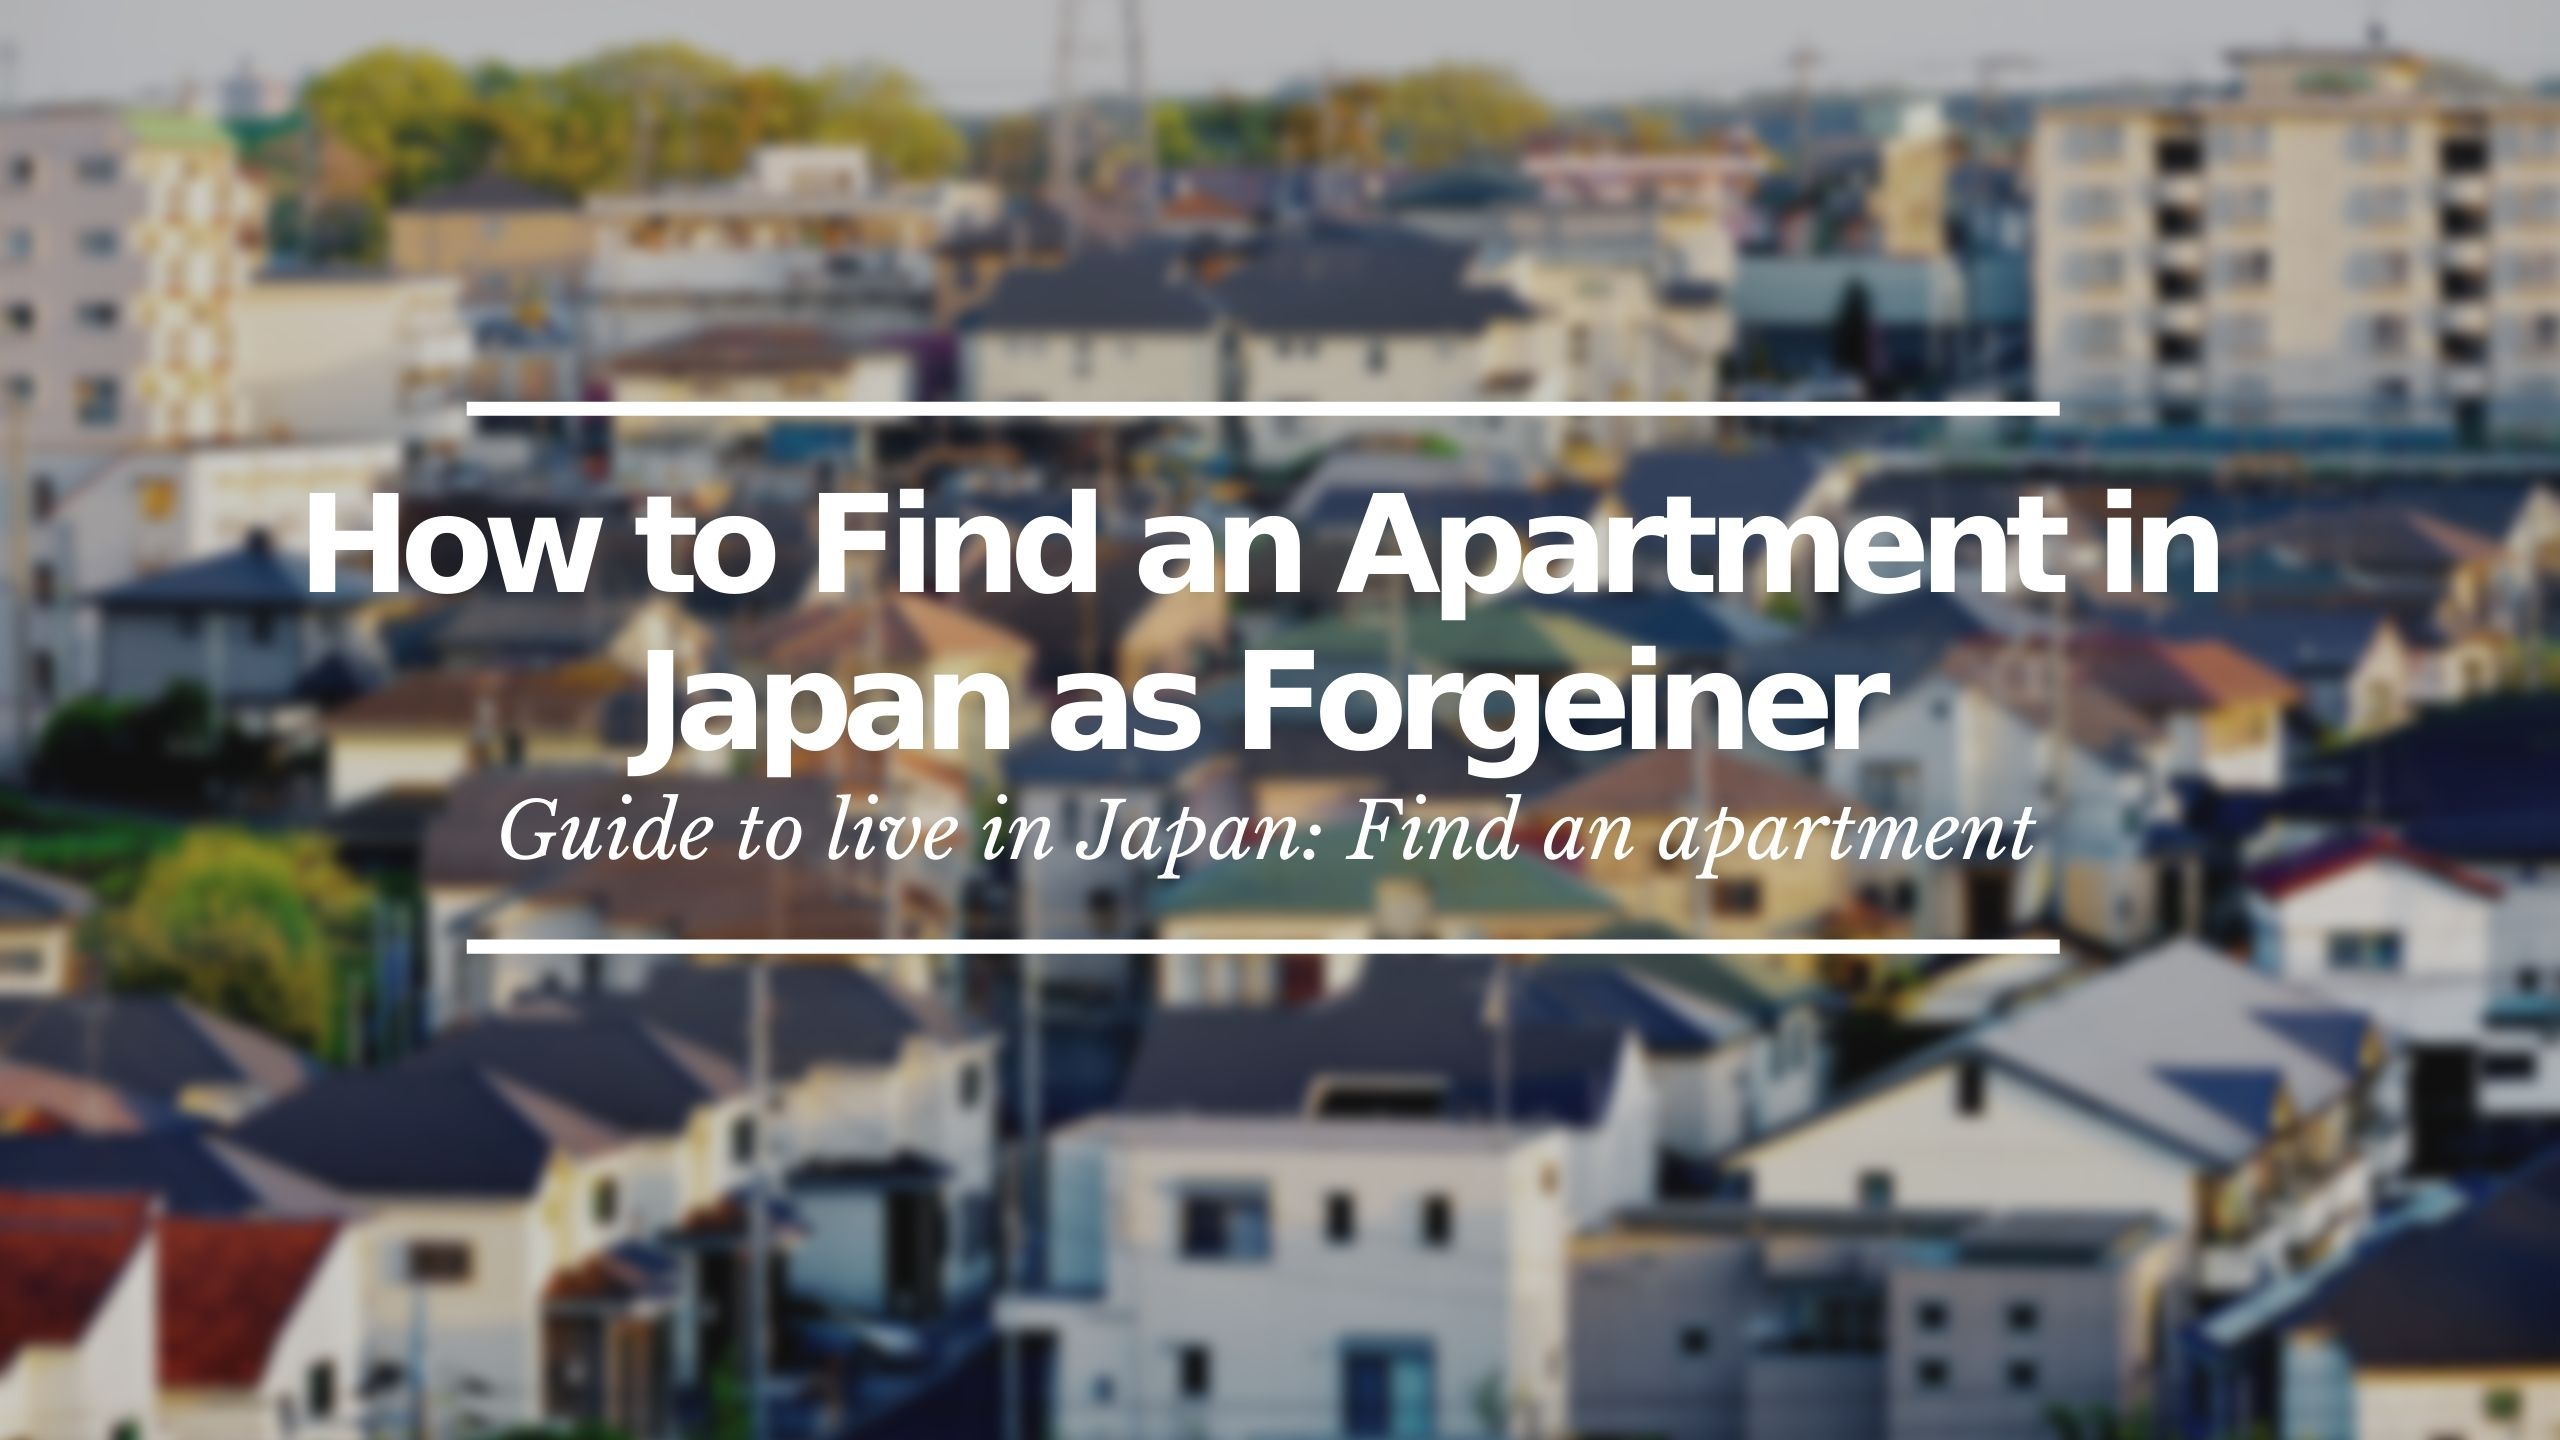 How to Find an Apartment in Japan as Forgeiner